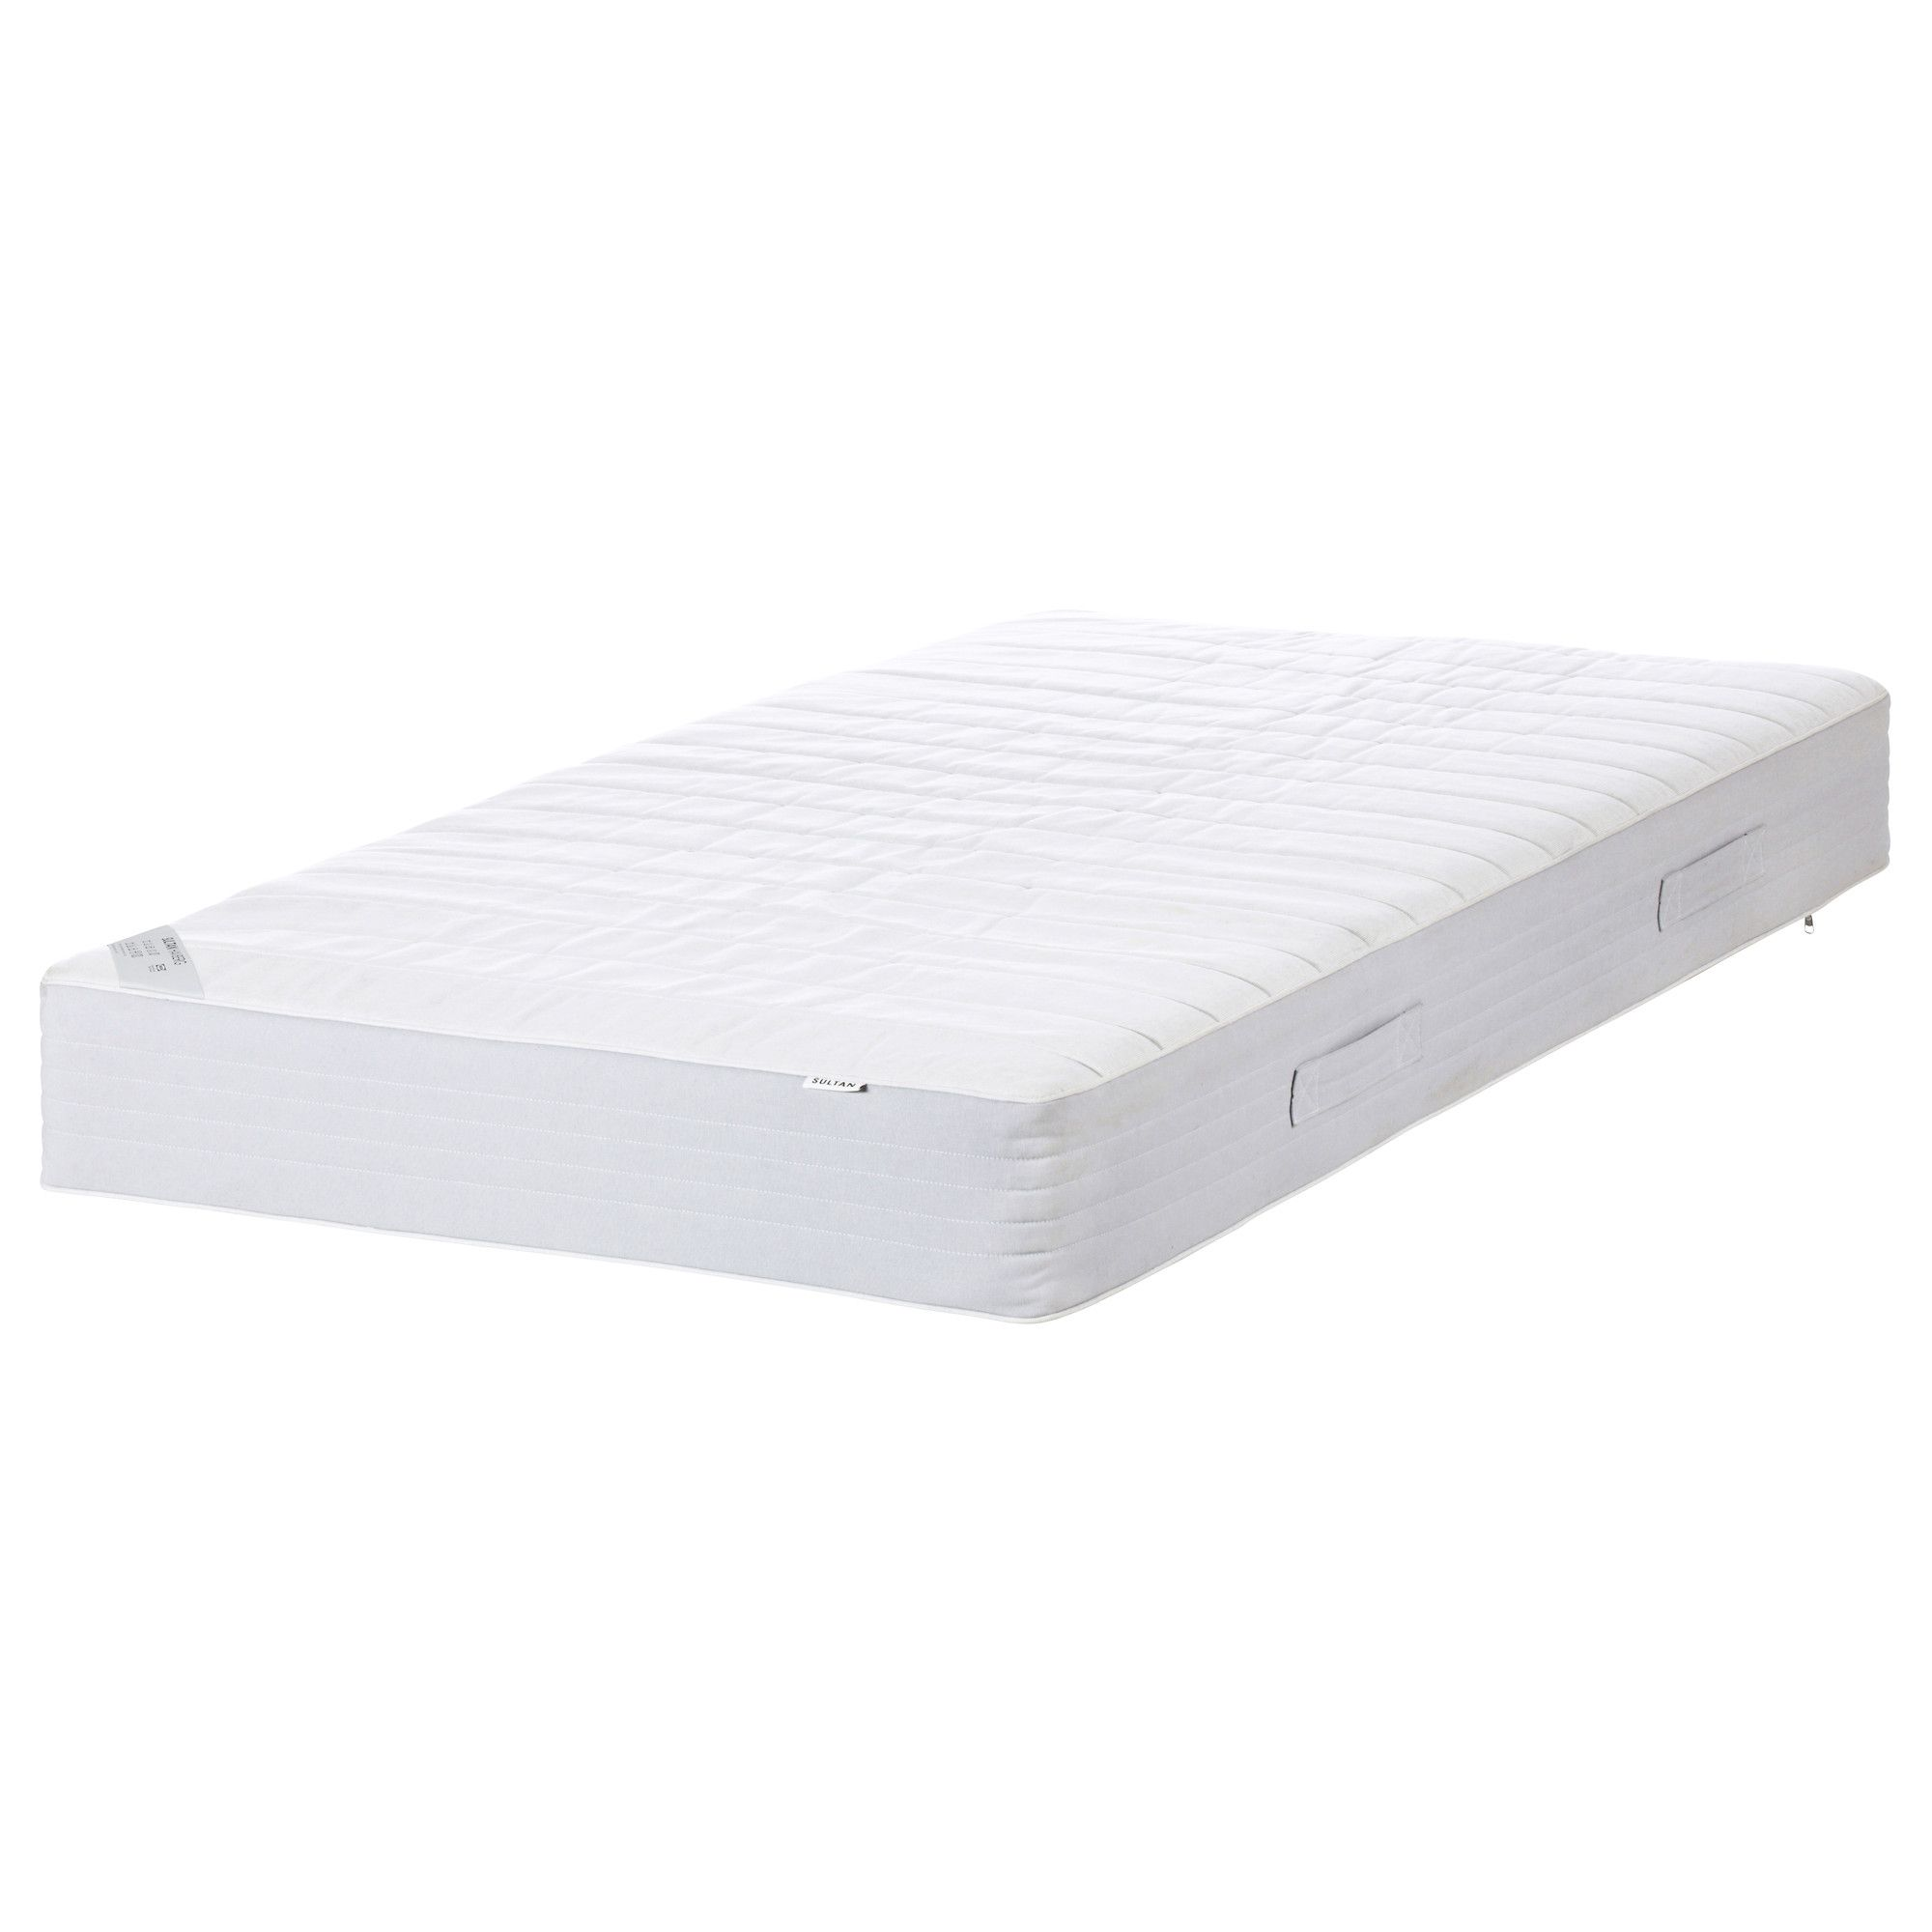 sultan havberg spring mattress twin ikea two for lu 39 s daybed and trundle one for john 39 s. Black Bedroom Furniture Sets. Home Design Ideas